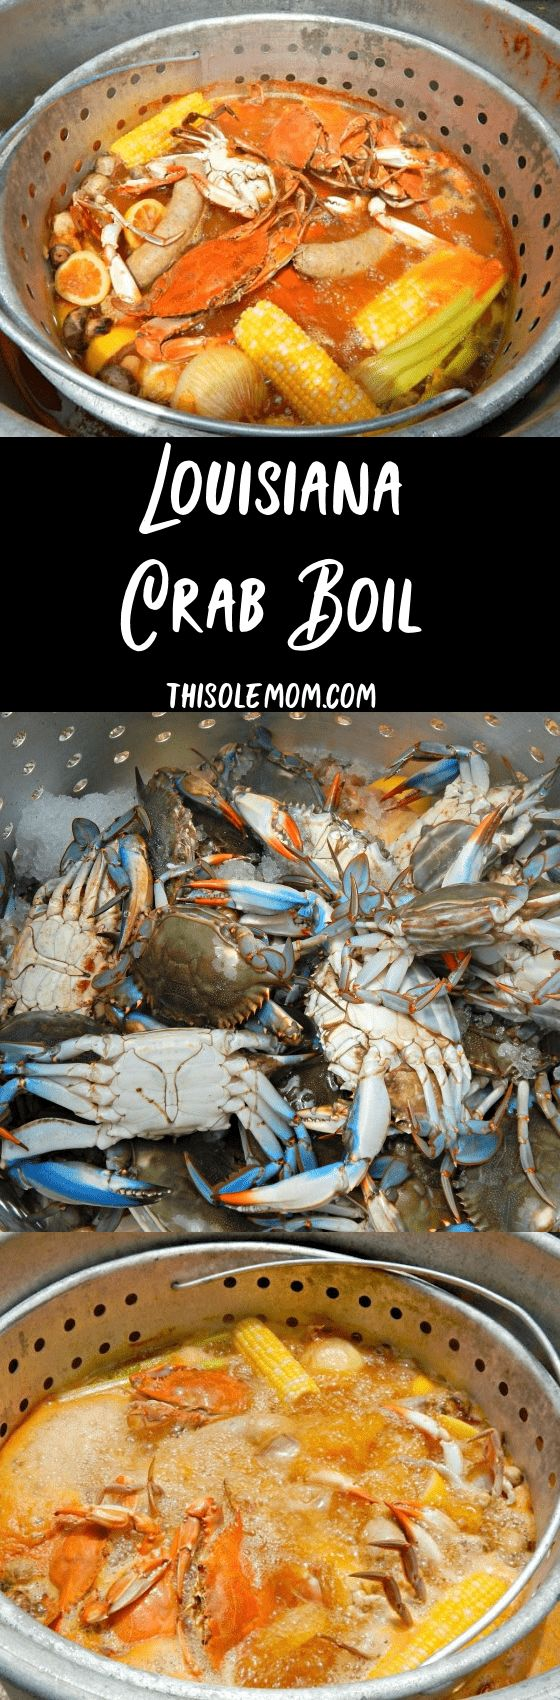 Louisiana Crab Boil - How to Boil  Crabs. (FULL TUTORIAL)